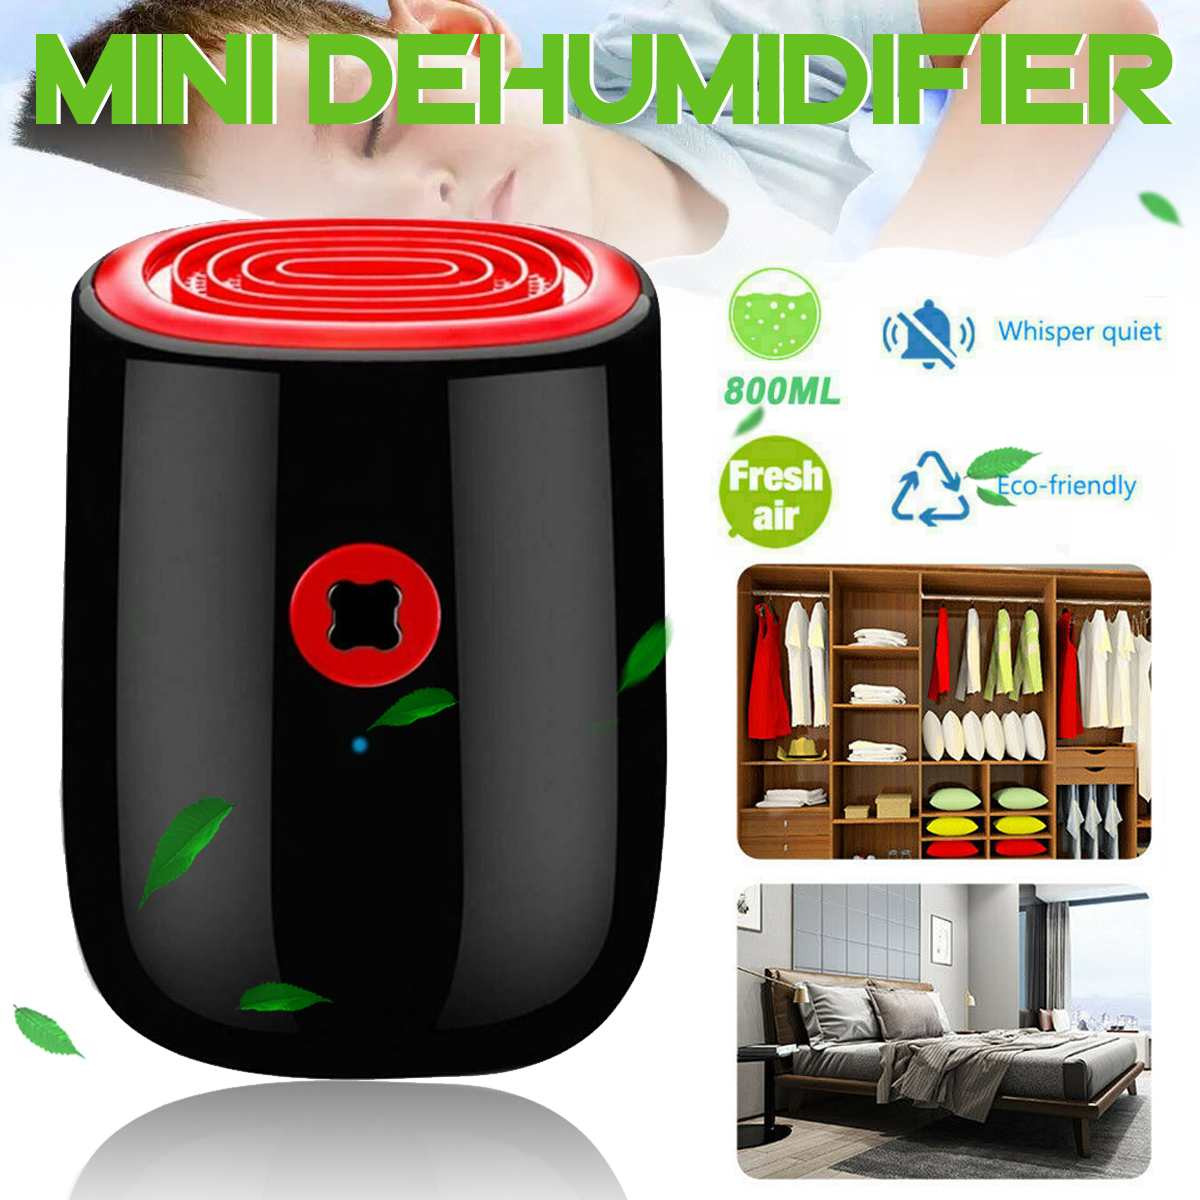 NEW 800Ml Electric Air Dehumidifier 22W Mini Household Dehumidifier Portable Cleaning Device Air Dryer Moisture For Home